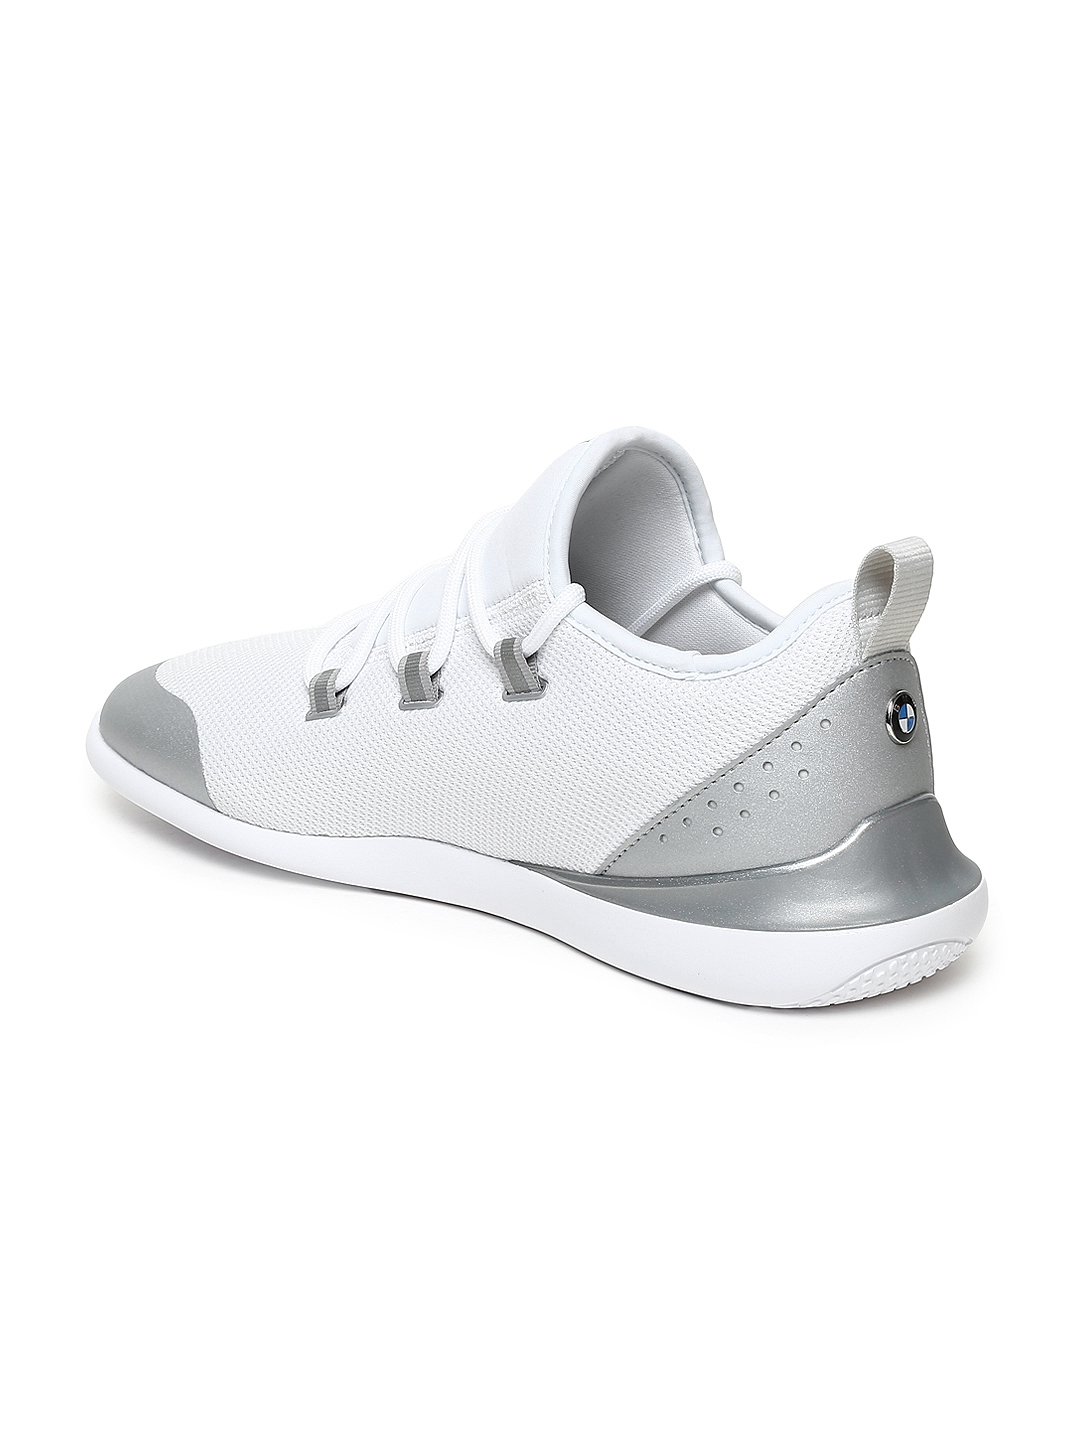 Buy Puma Men White BMW MMS Evo Cat Racer Sneakers - Casual Shoes for ... 067c89a23